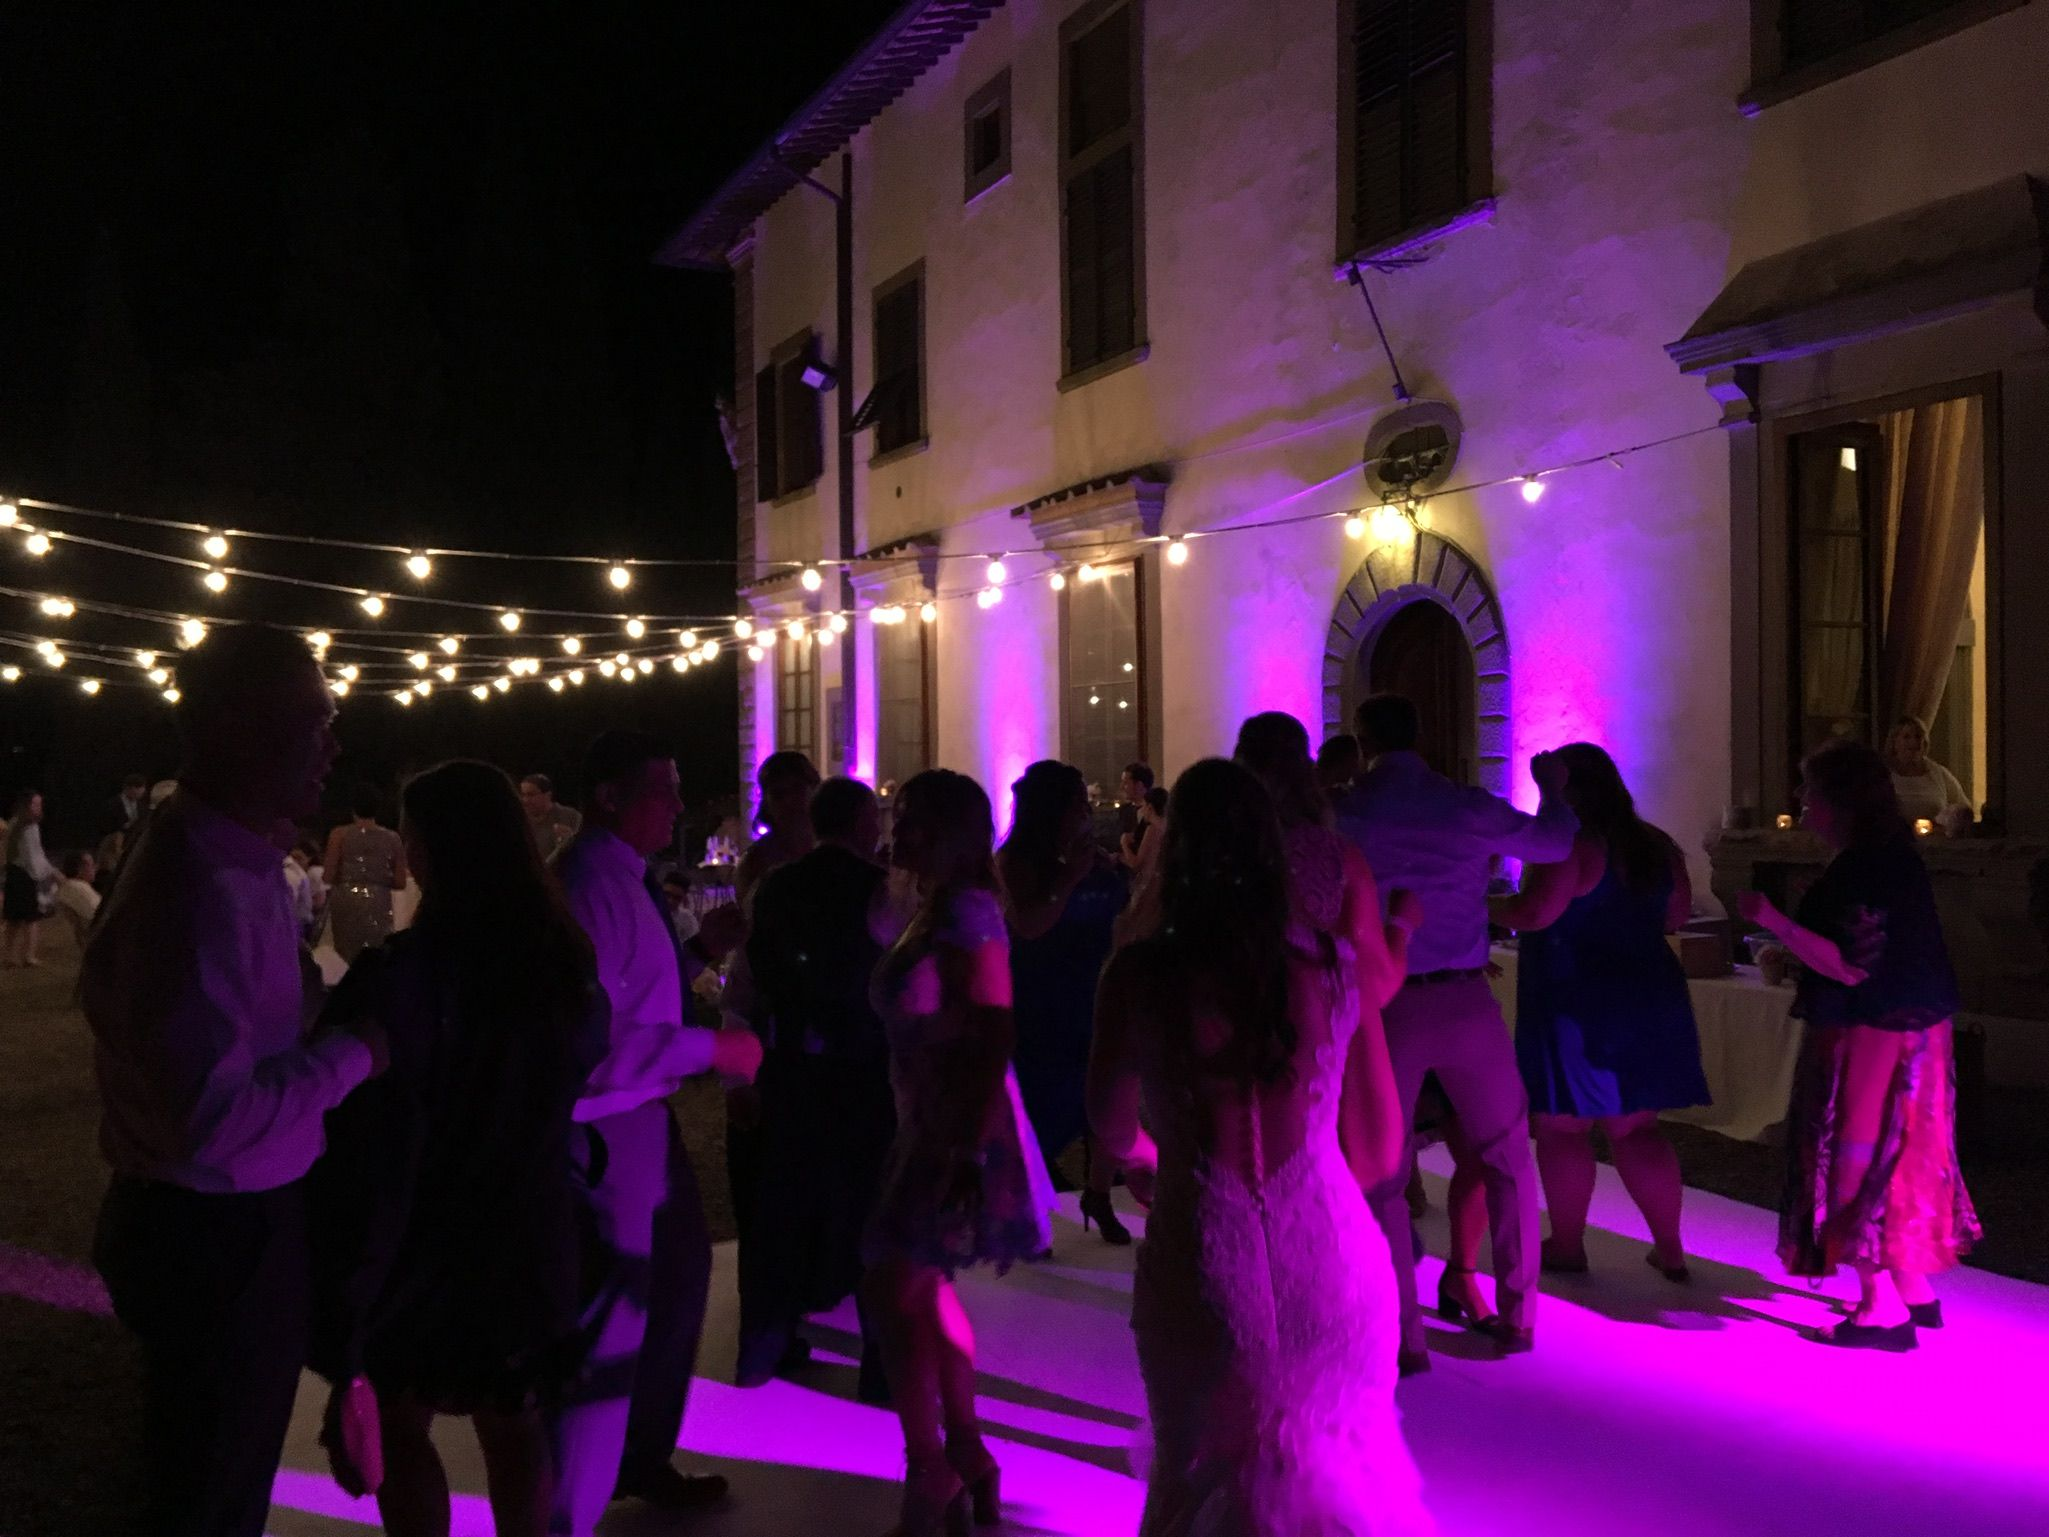 Merveilleux Bulbs Set Up And Dancefloor #wedding In #tuscany #tuscanwedding